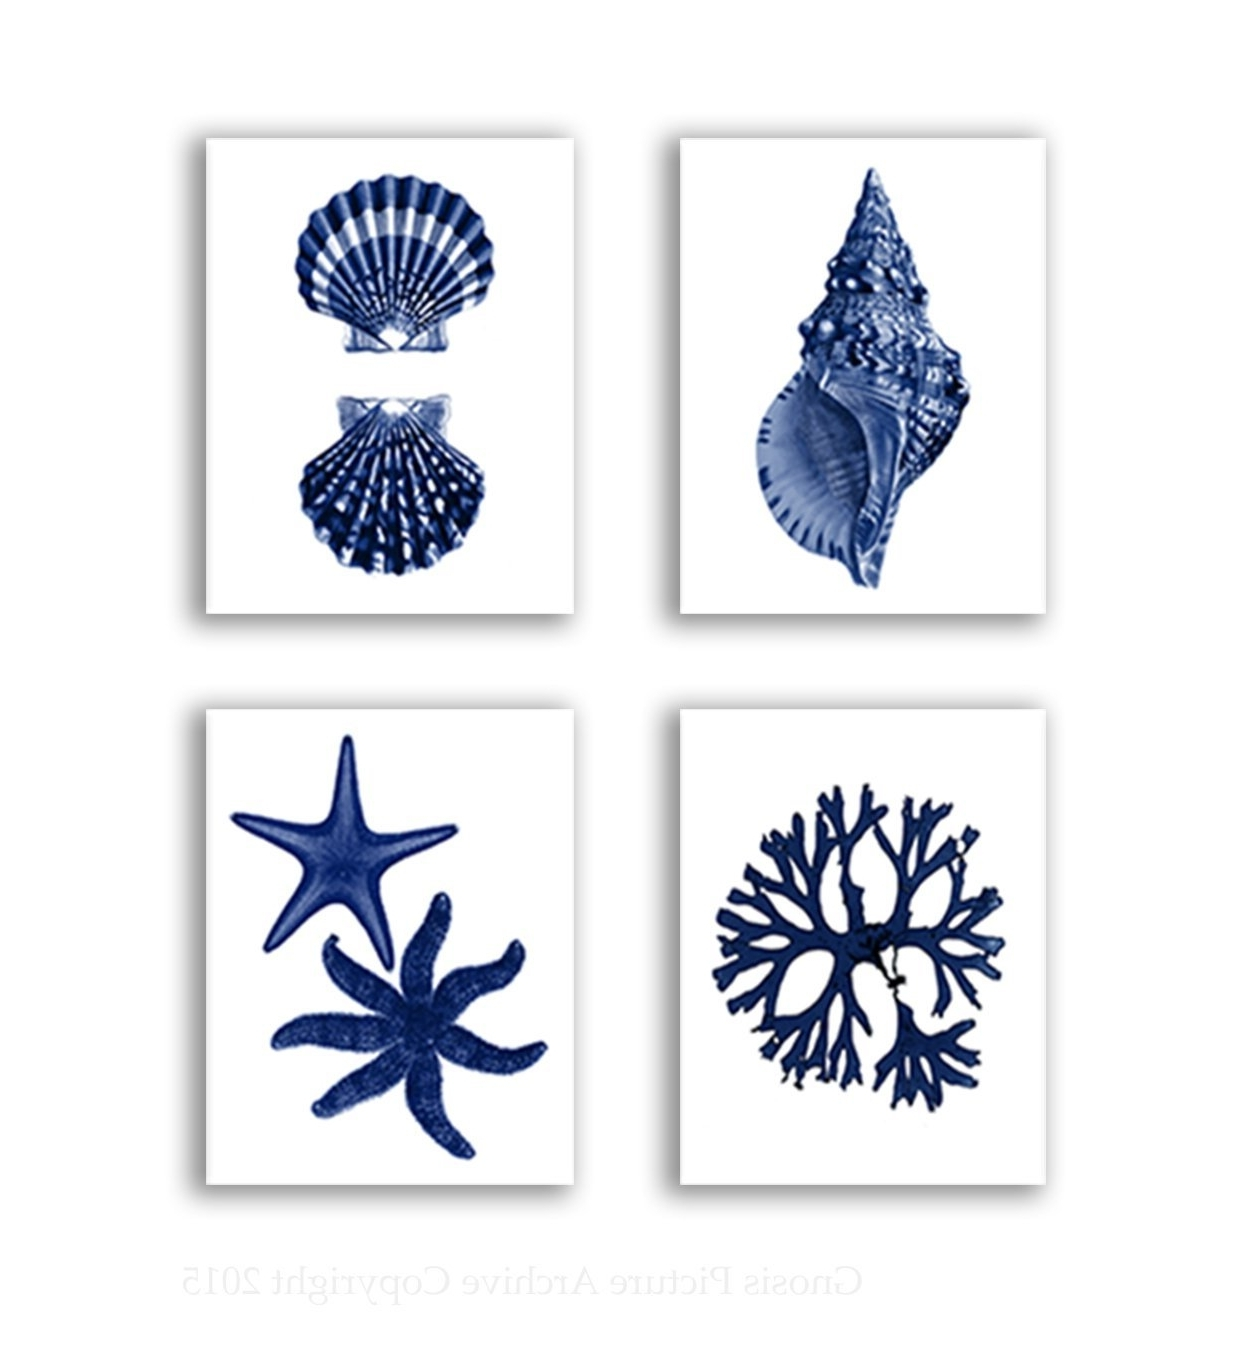 Most Recently Released Navy Blue Wall Art Intended For Amazon: Navy Blue Beach Wall Art Decor Set Of 4 Unframed (View 3 of 15)